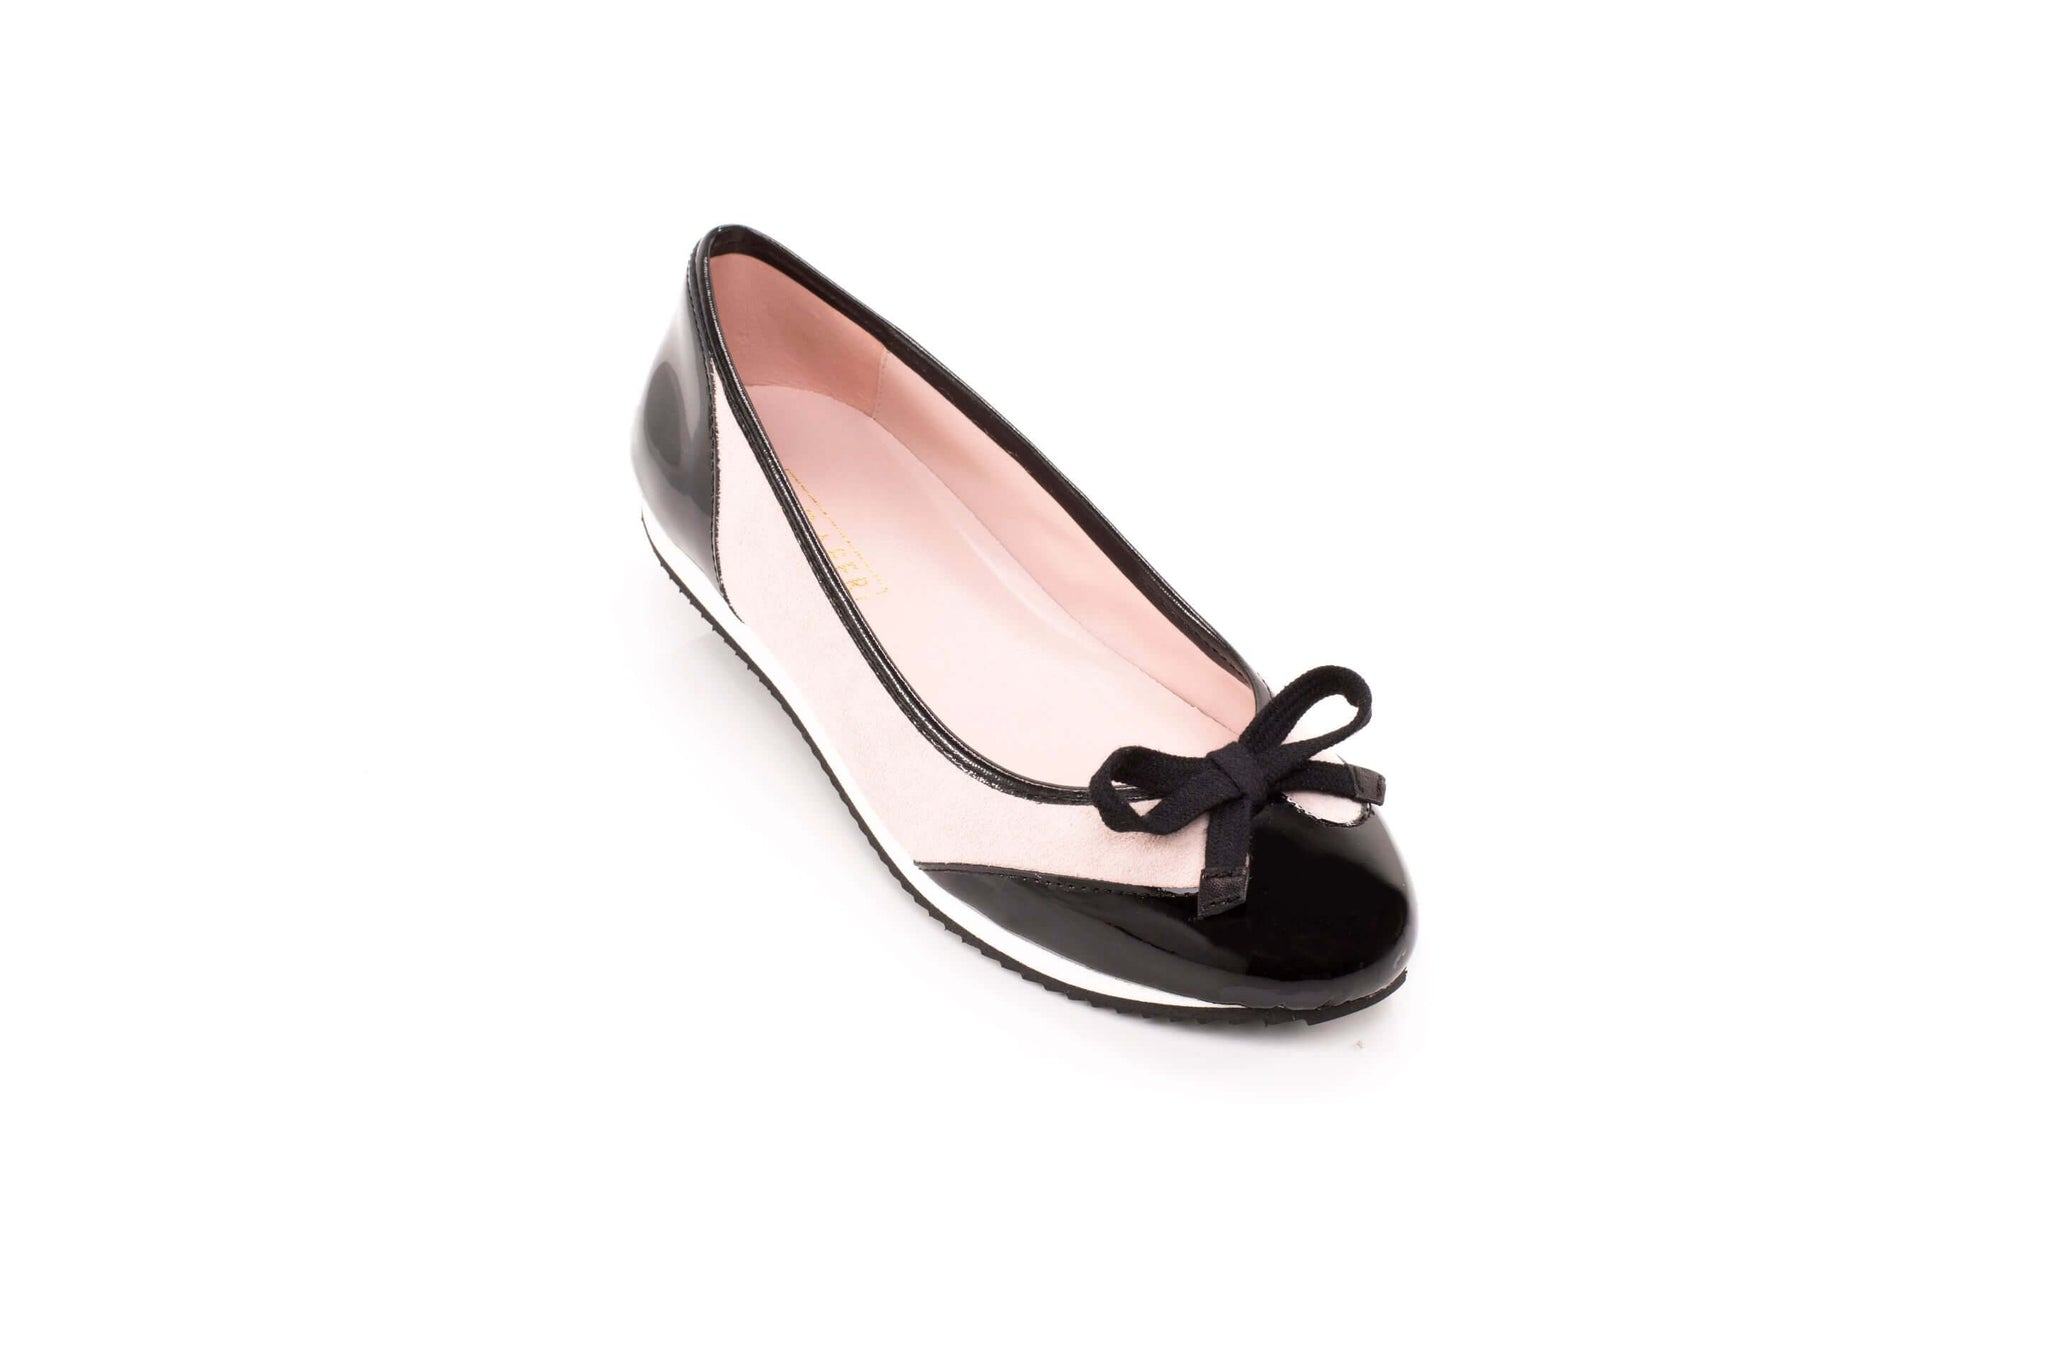 Black and blush sneakerpump by Sloafer - the elegance and simplicity of a ballet pump, the comfort and support of a sneaker.